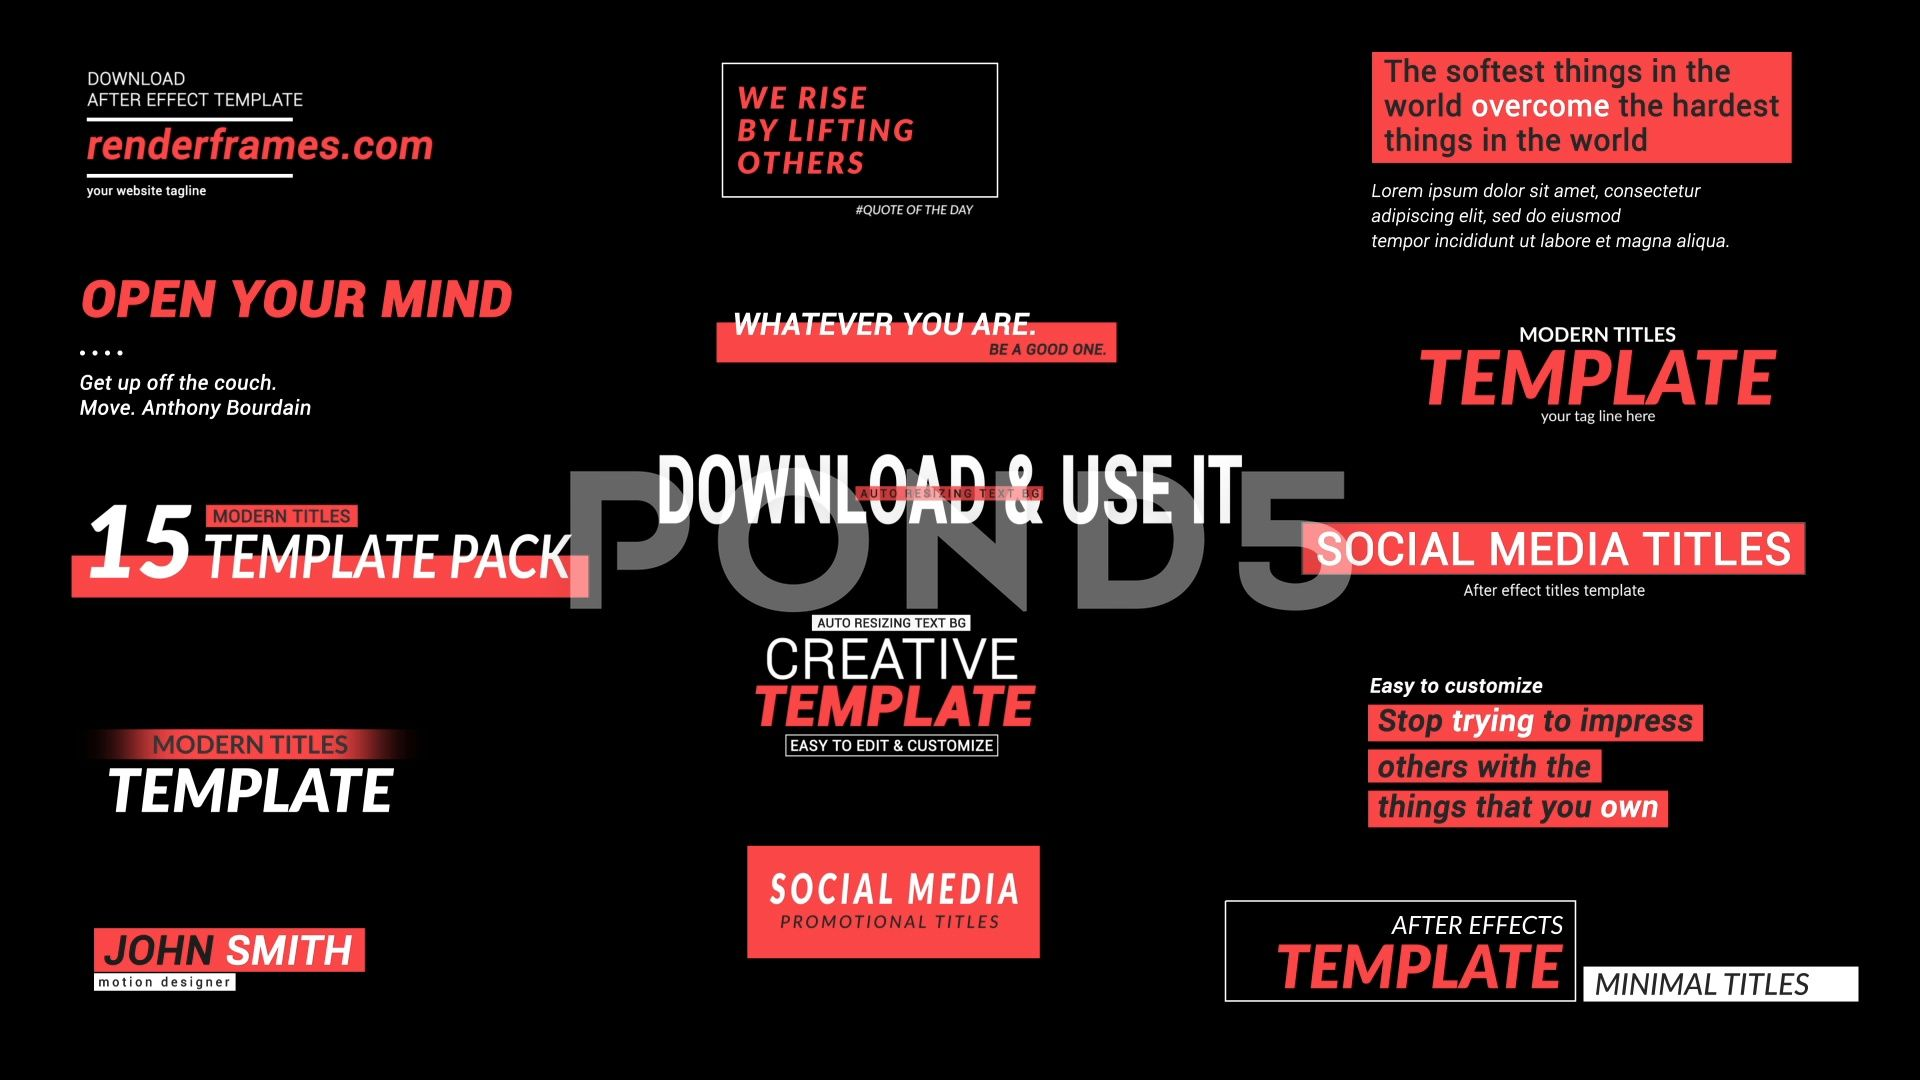 Social Media Titles 2 0 Stock After Effects Ad Titles Media Social Effects Social Media Templates Mockup Design Social media after effects template